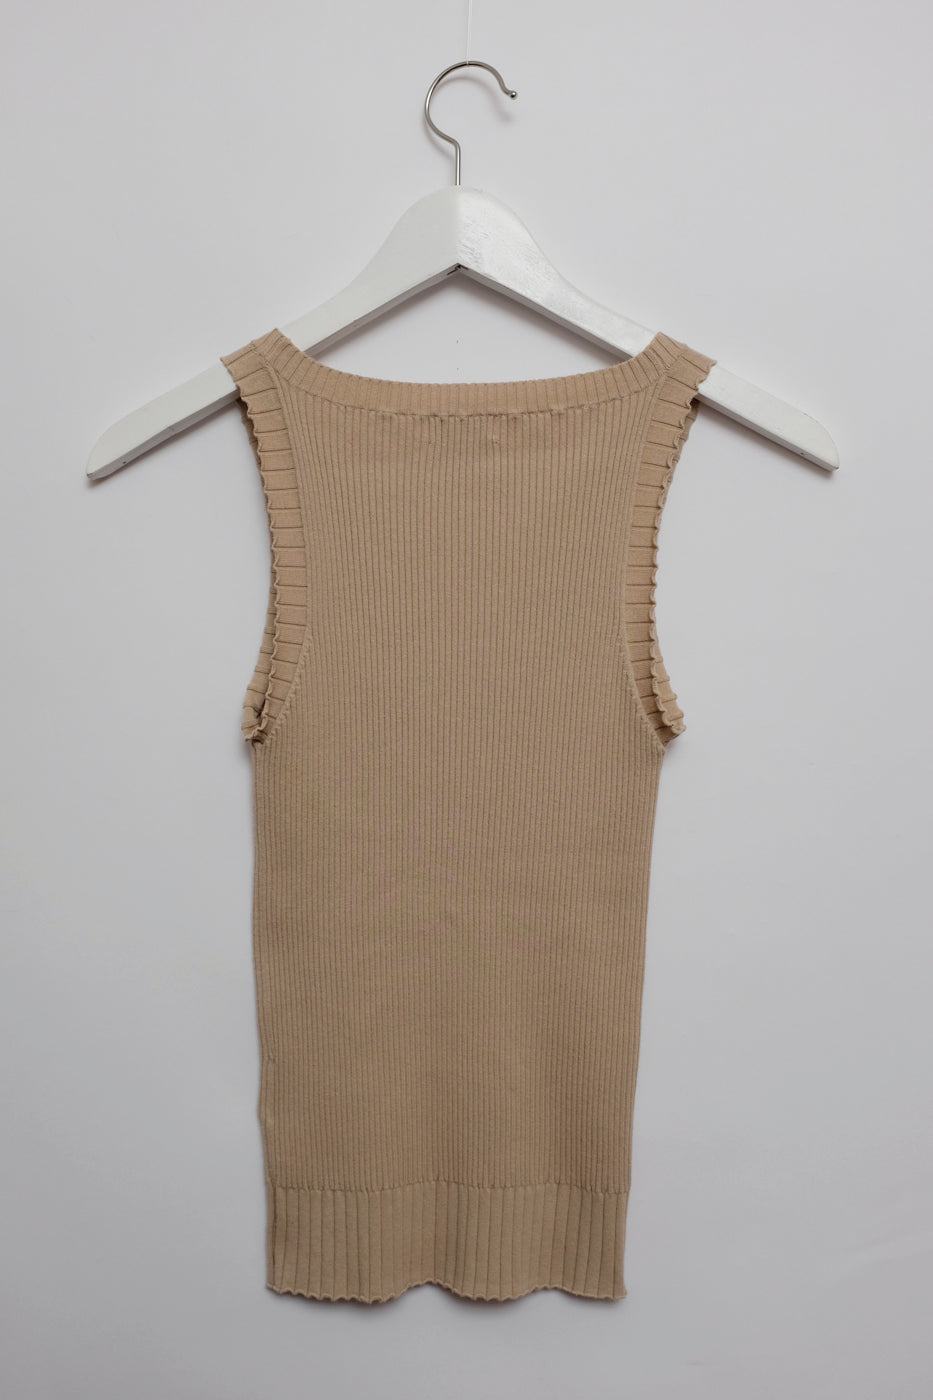 0007_HUGO BOSS BEIGE RIB TOP